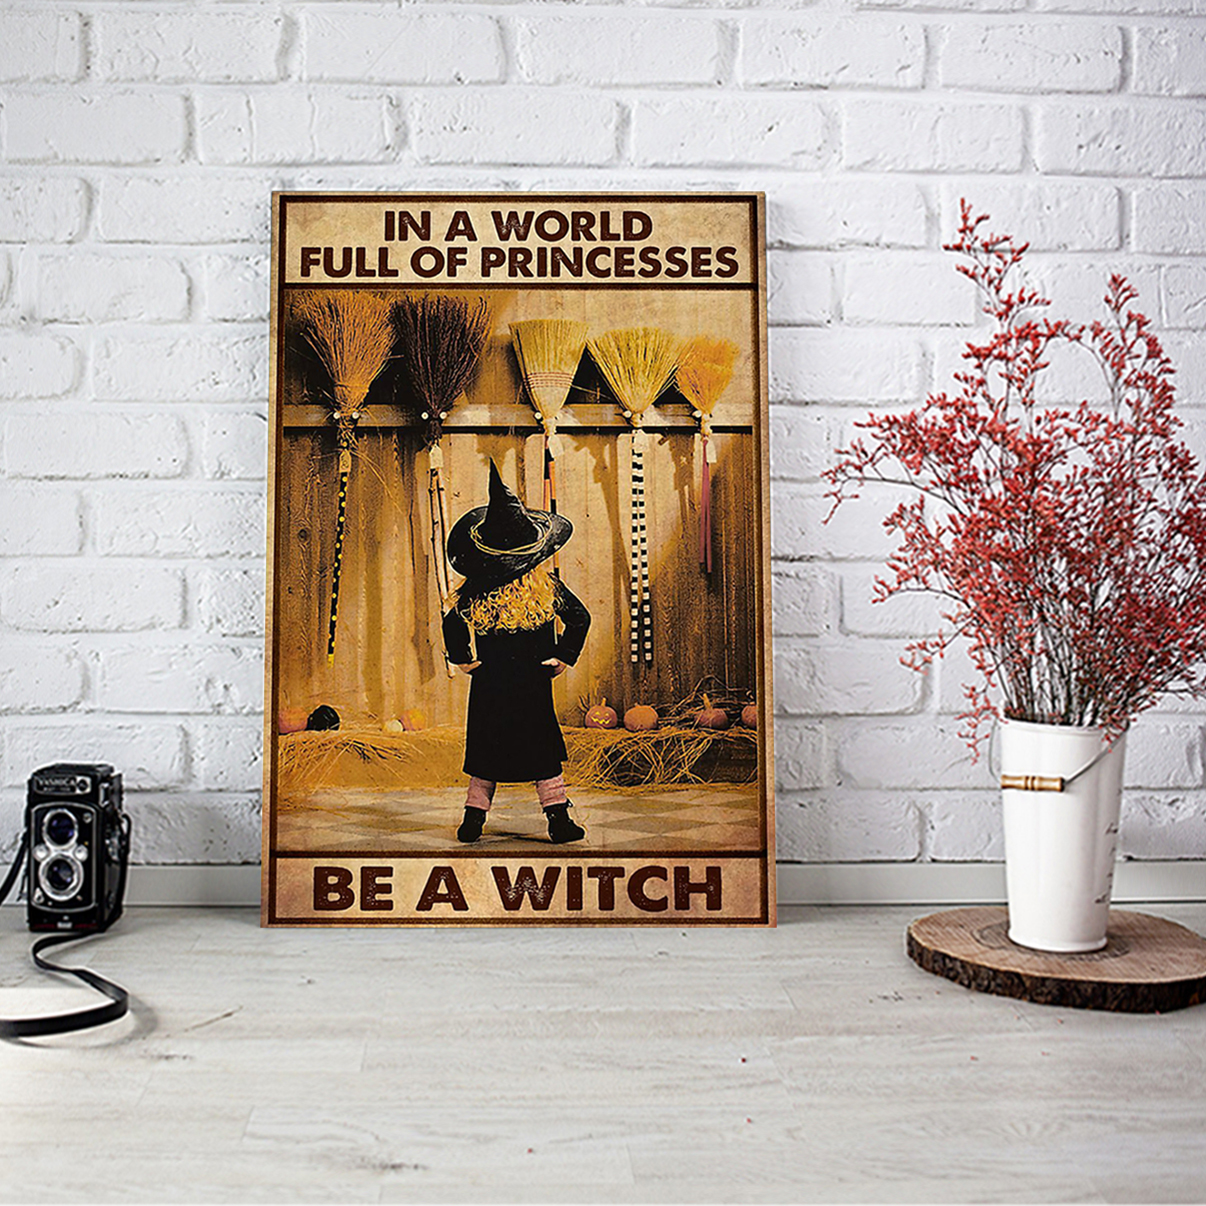 IN A WORLD FULL OF PRINCESS BE A WITCH POSTER A2